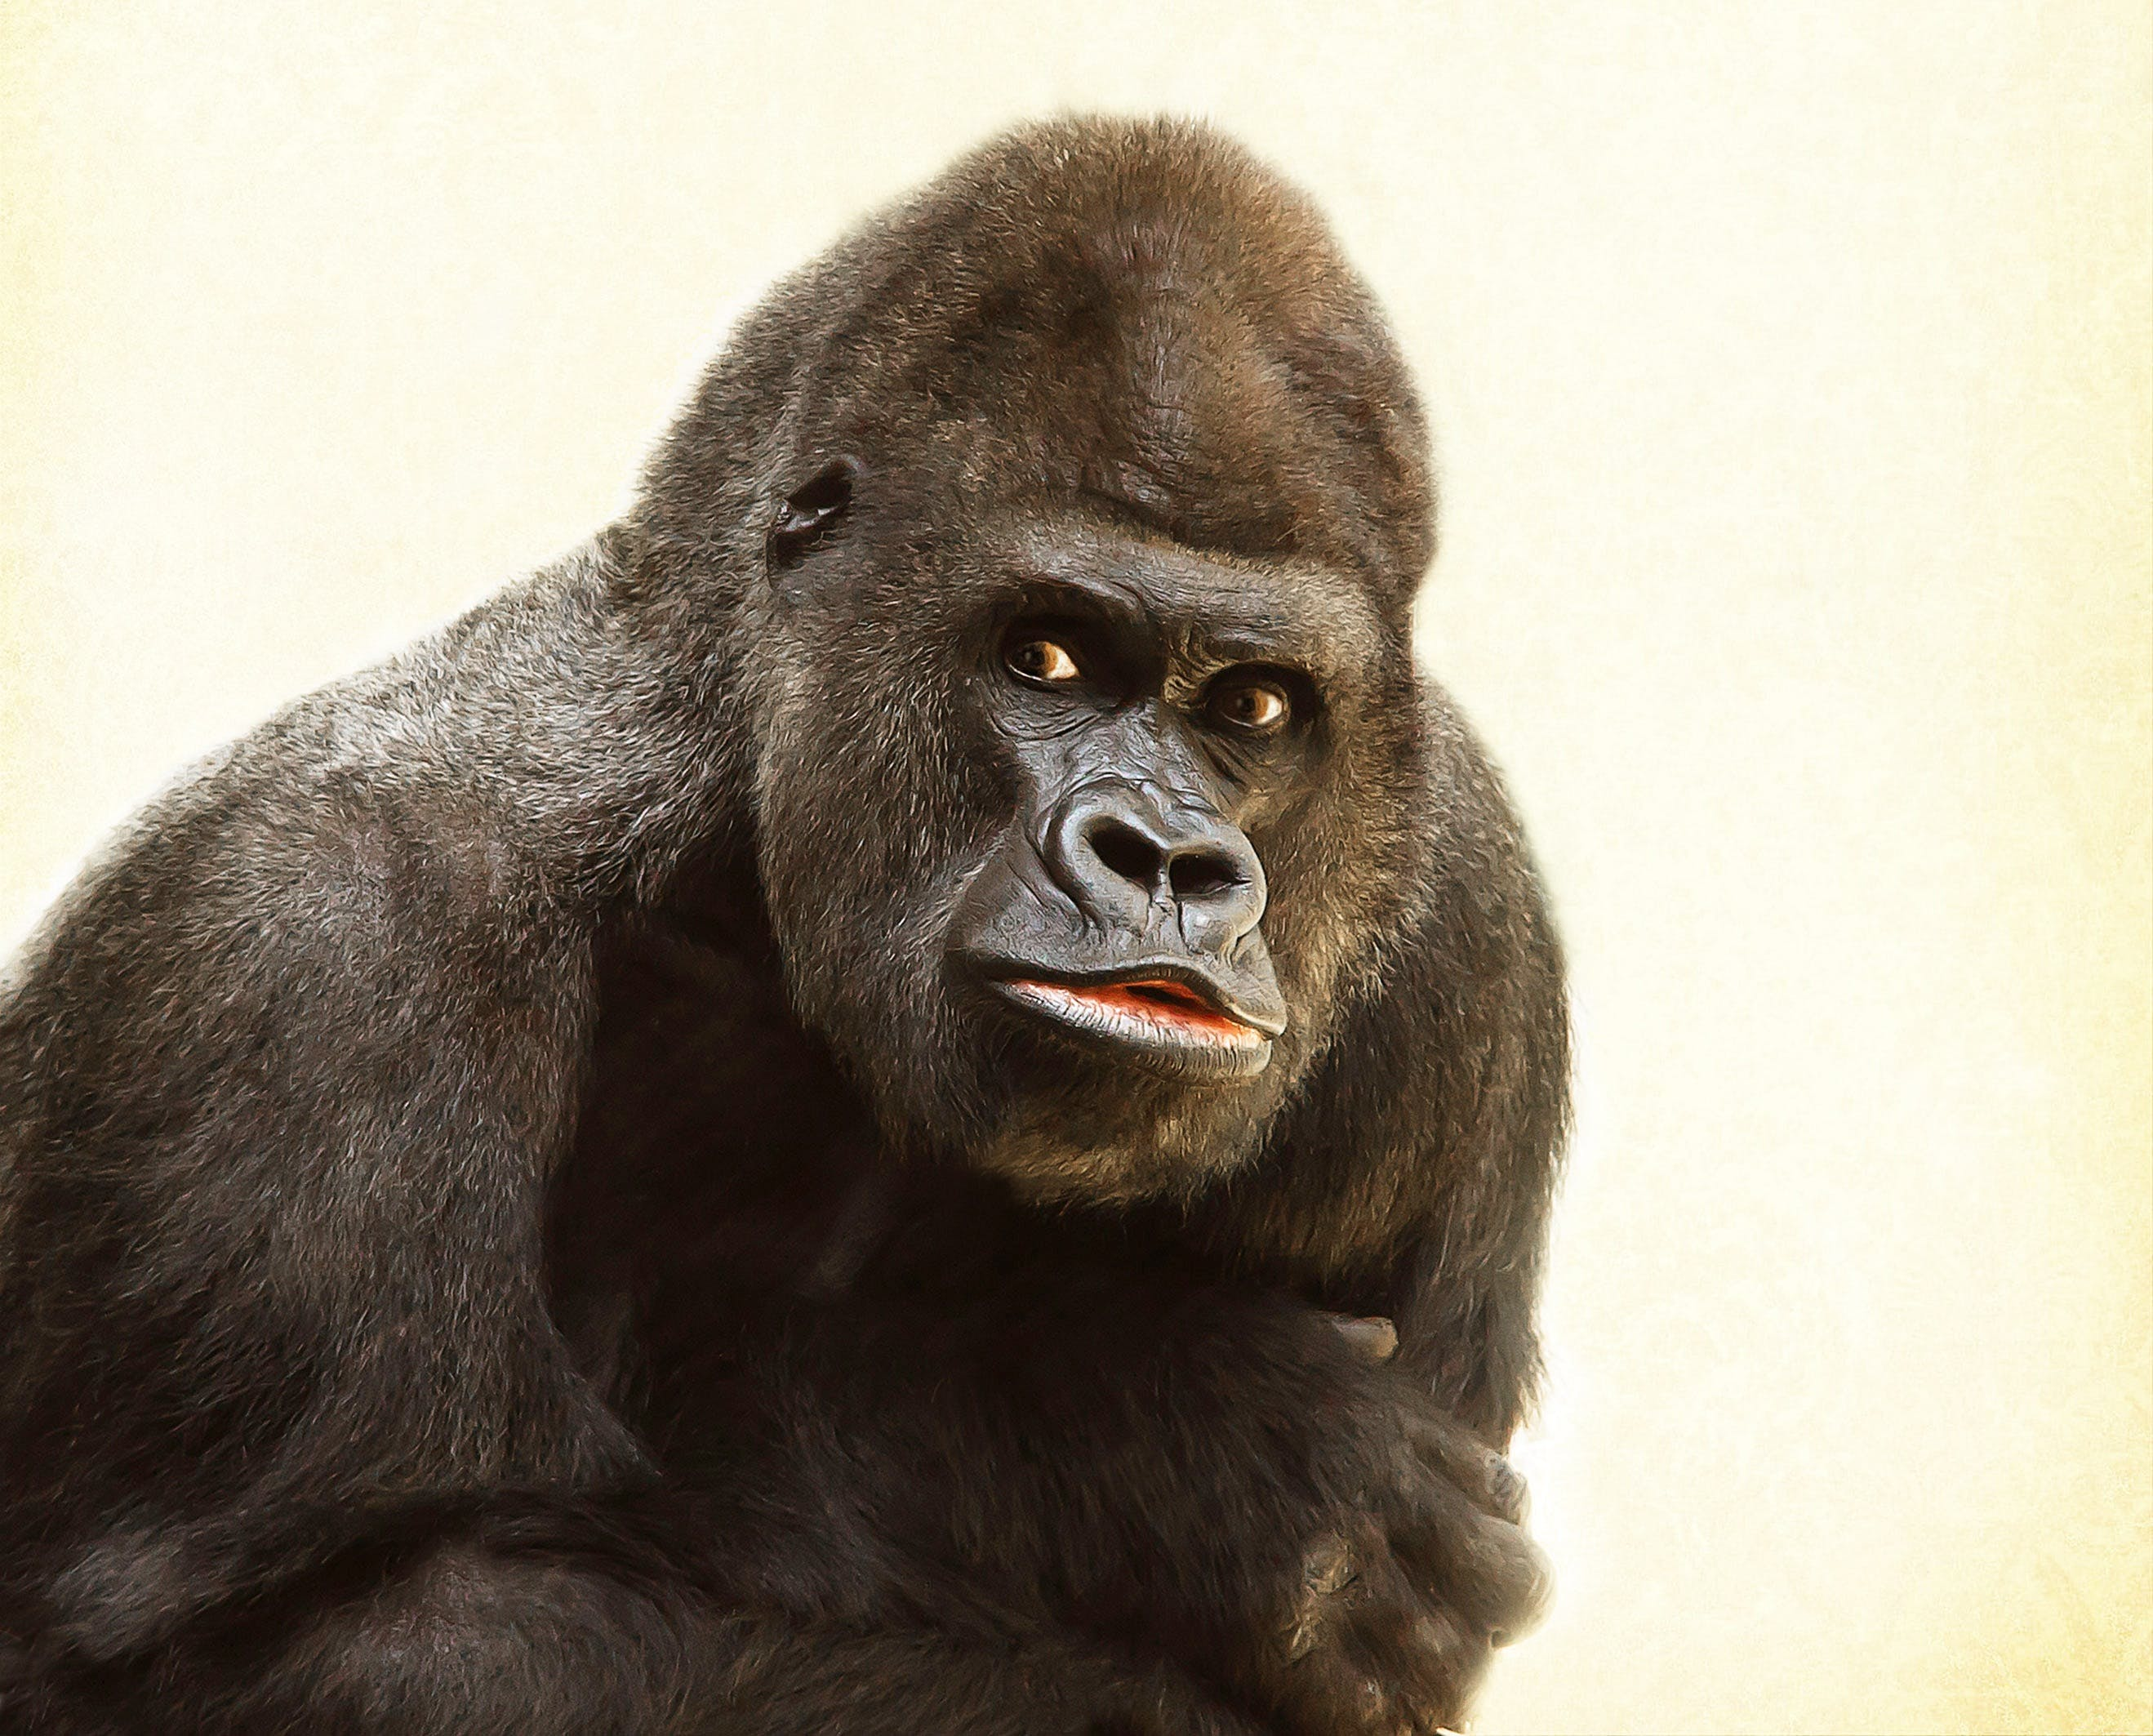 Black Gorilla in Close Up Photography